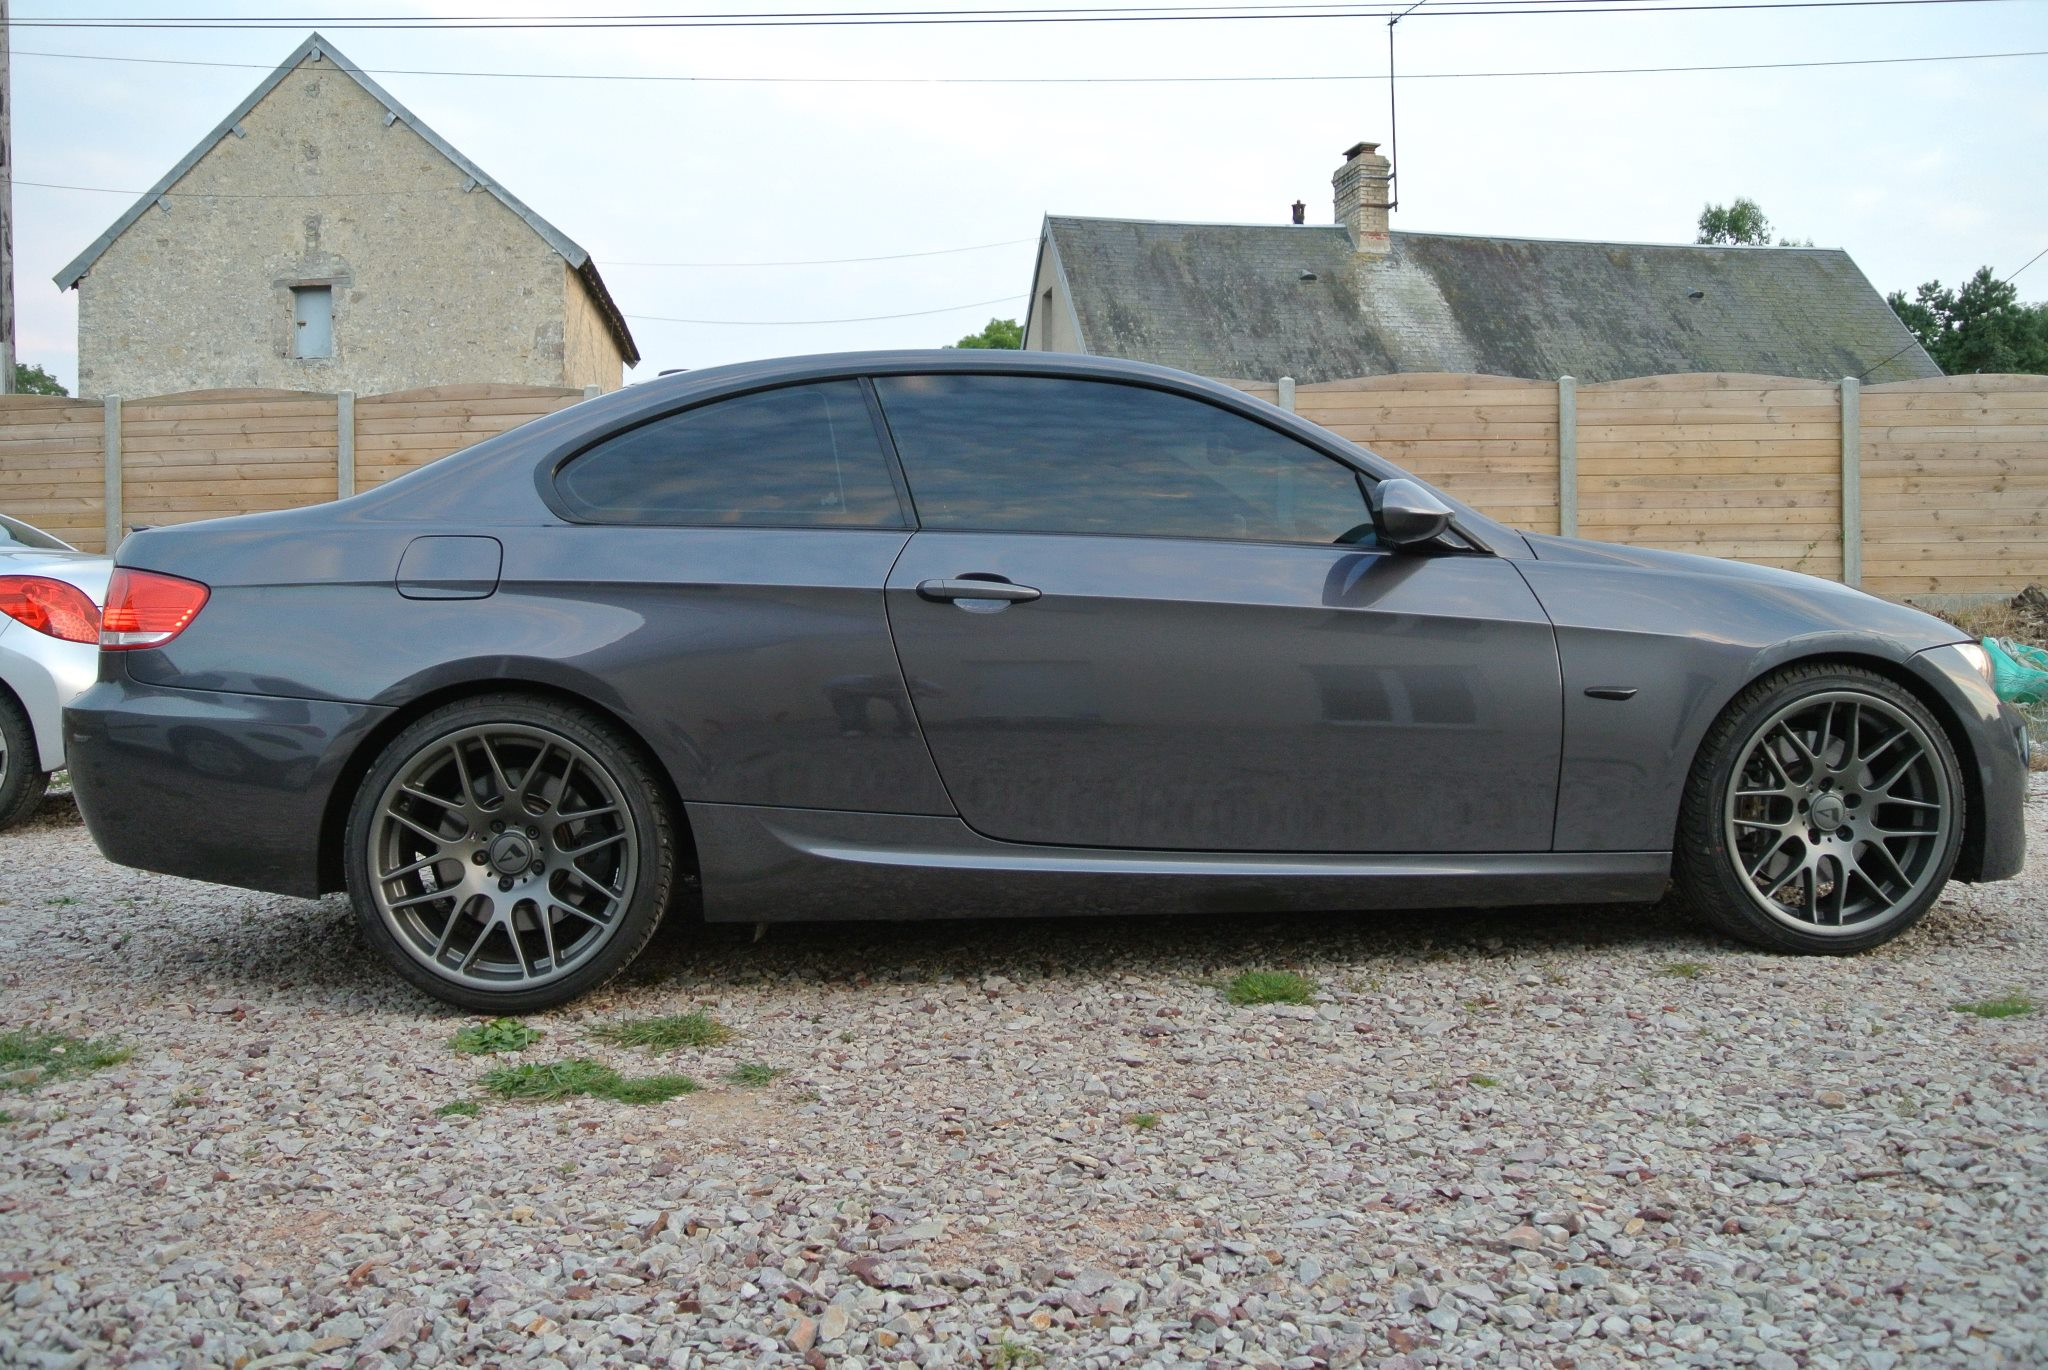 New 19 Quot Atomic Csl Alloys In Satin Gunmetal With Very